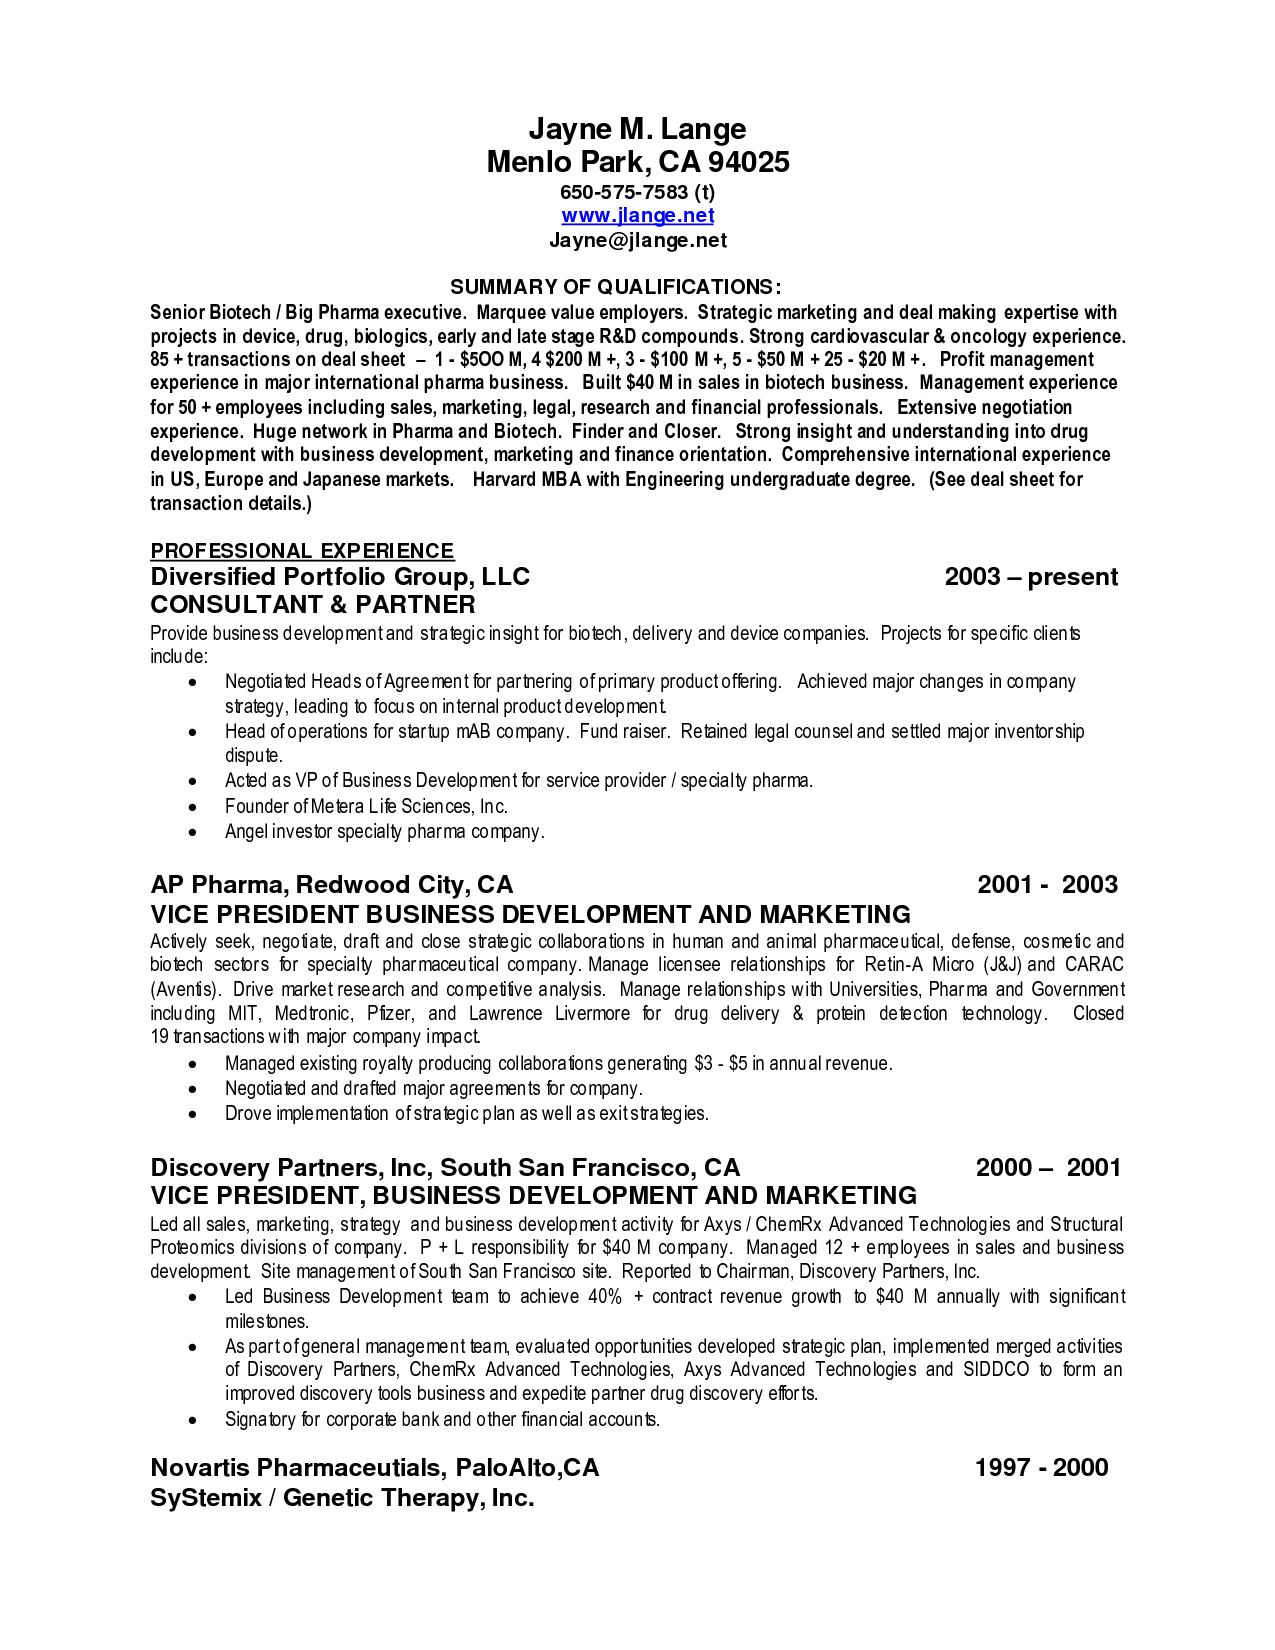 resume qualifications summary snapwit co